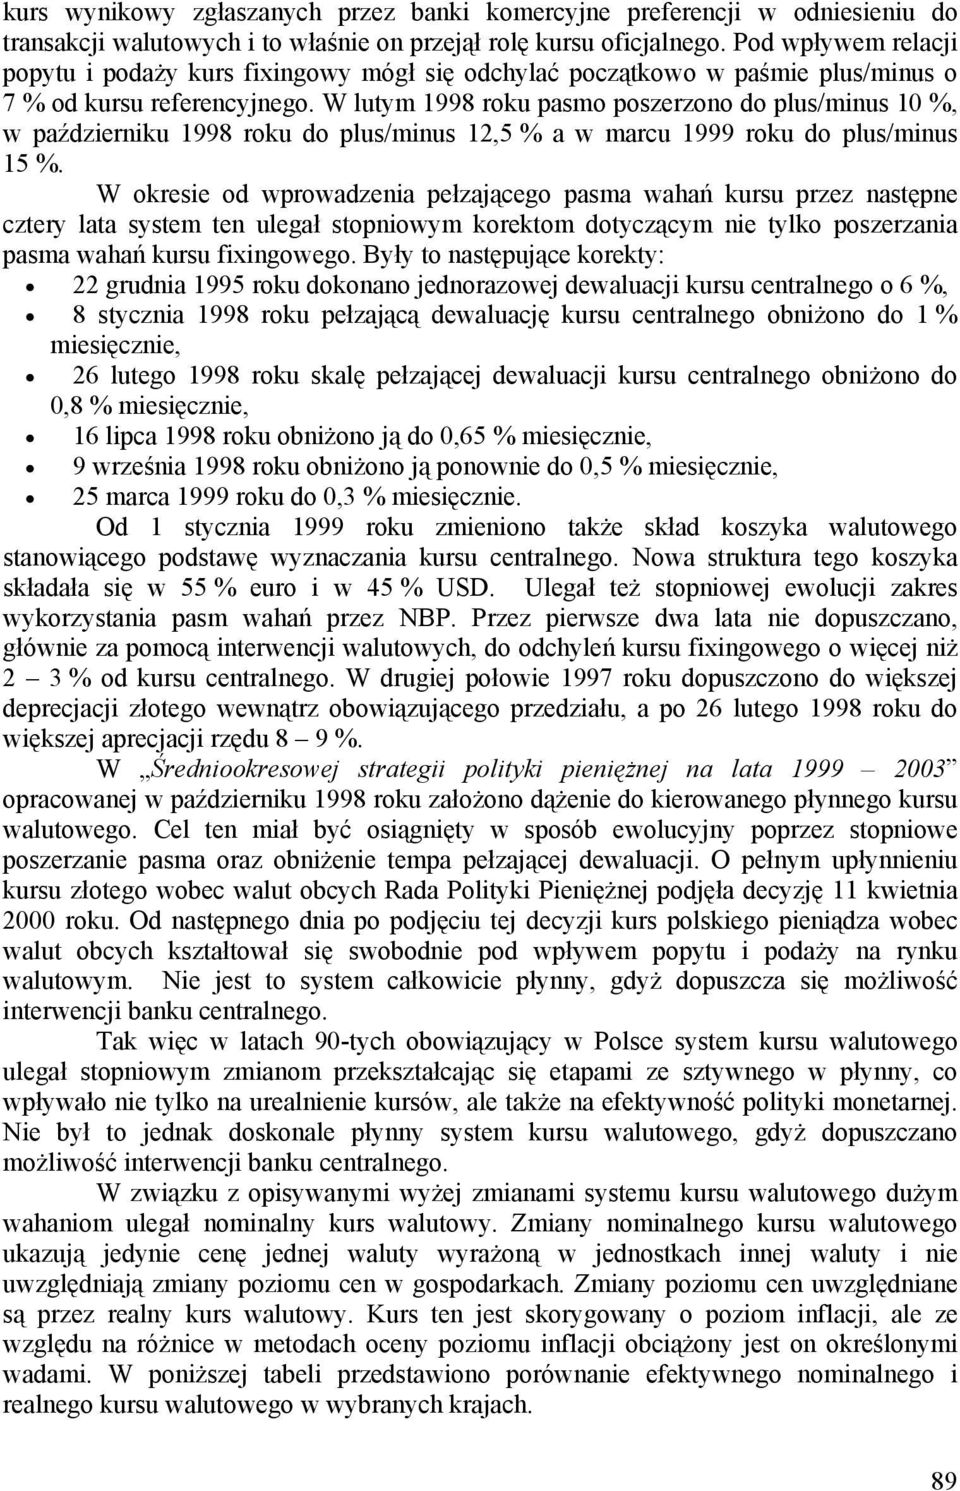 W lutym 1998 roku pasmo poserono do plus/minus 10 %, w paźdierniku 1998 roku do plus/minus 12,5 % a w marcu 1999 roku do plus/minus 15 %.